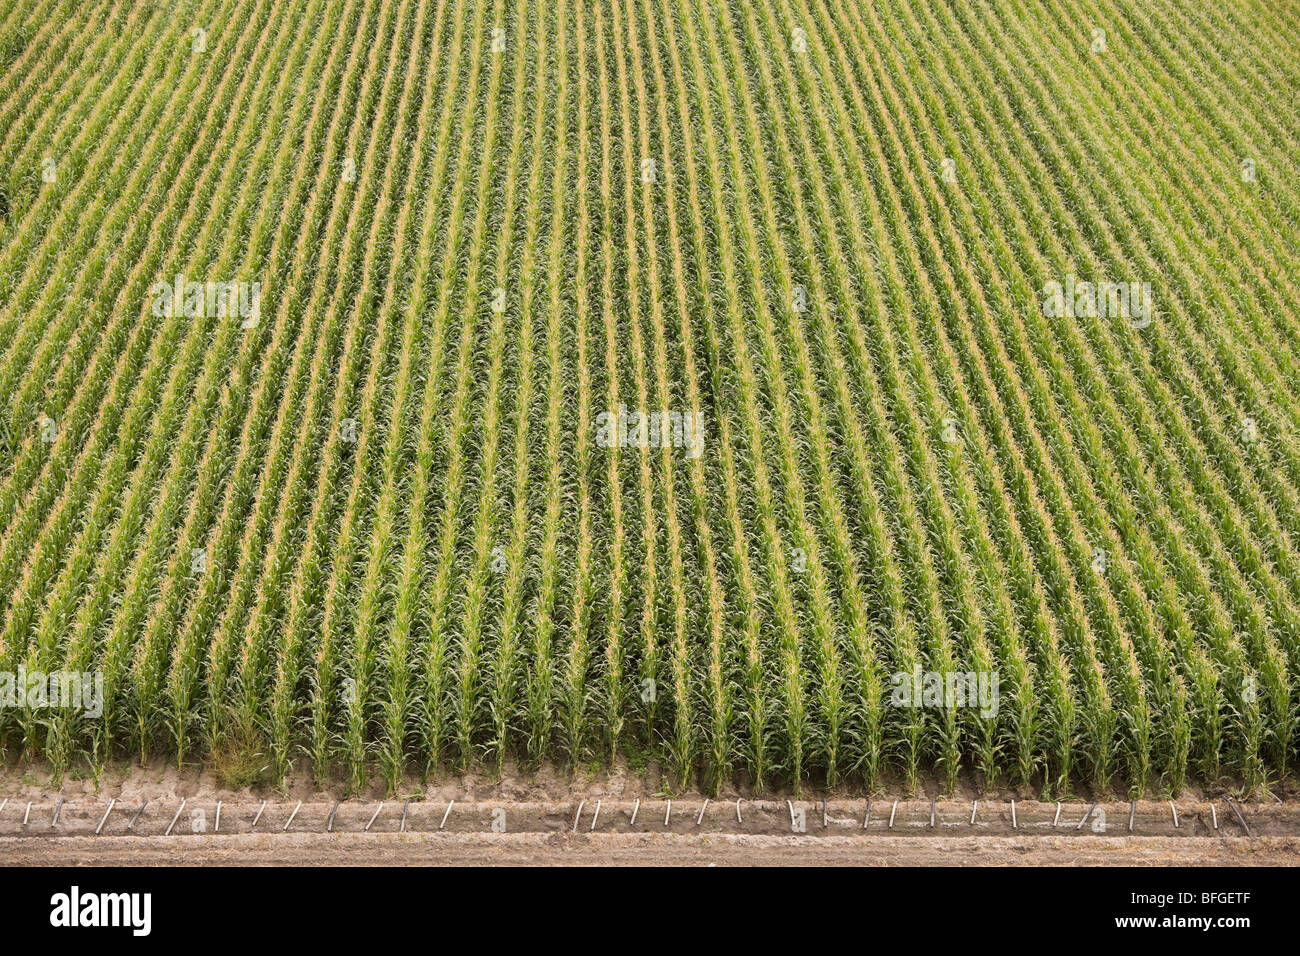 Aerial view of an American corn maize field with irrigation in summer. North Platte, Nebraska, NE US USA. - Stock Image